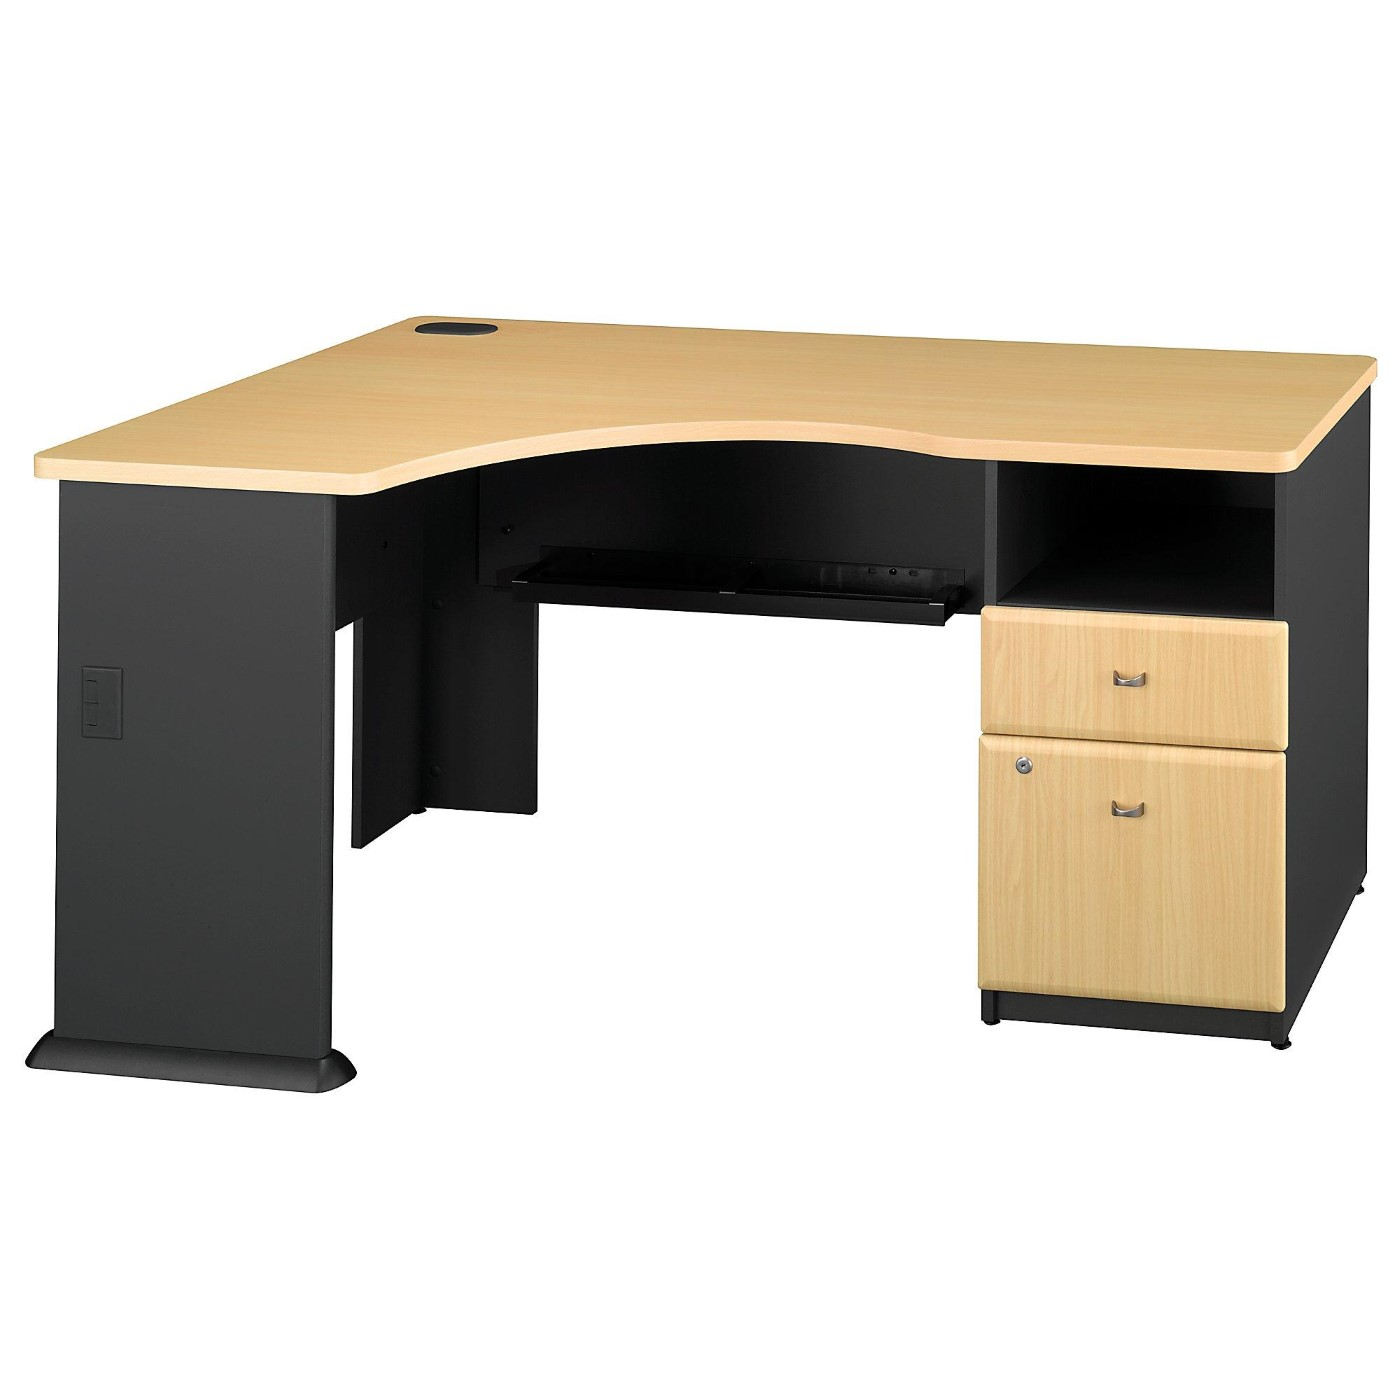 BUSH BUSINESS FURNITURE SERIES A CORNER DESK WITH 2 DRAWER PEDESTAL. FREE SHIPPING.